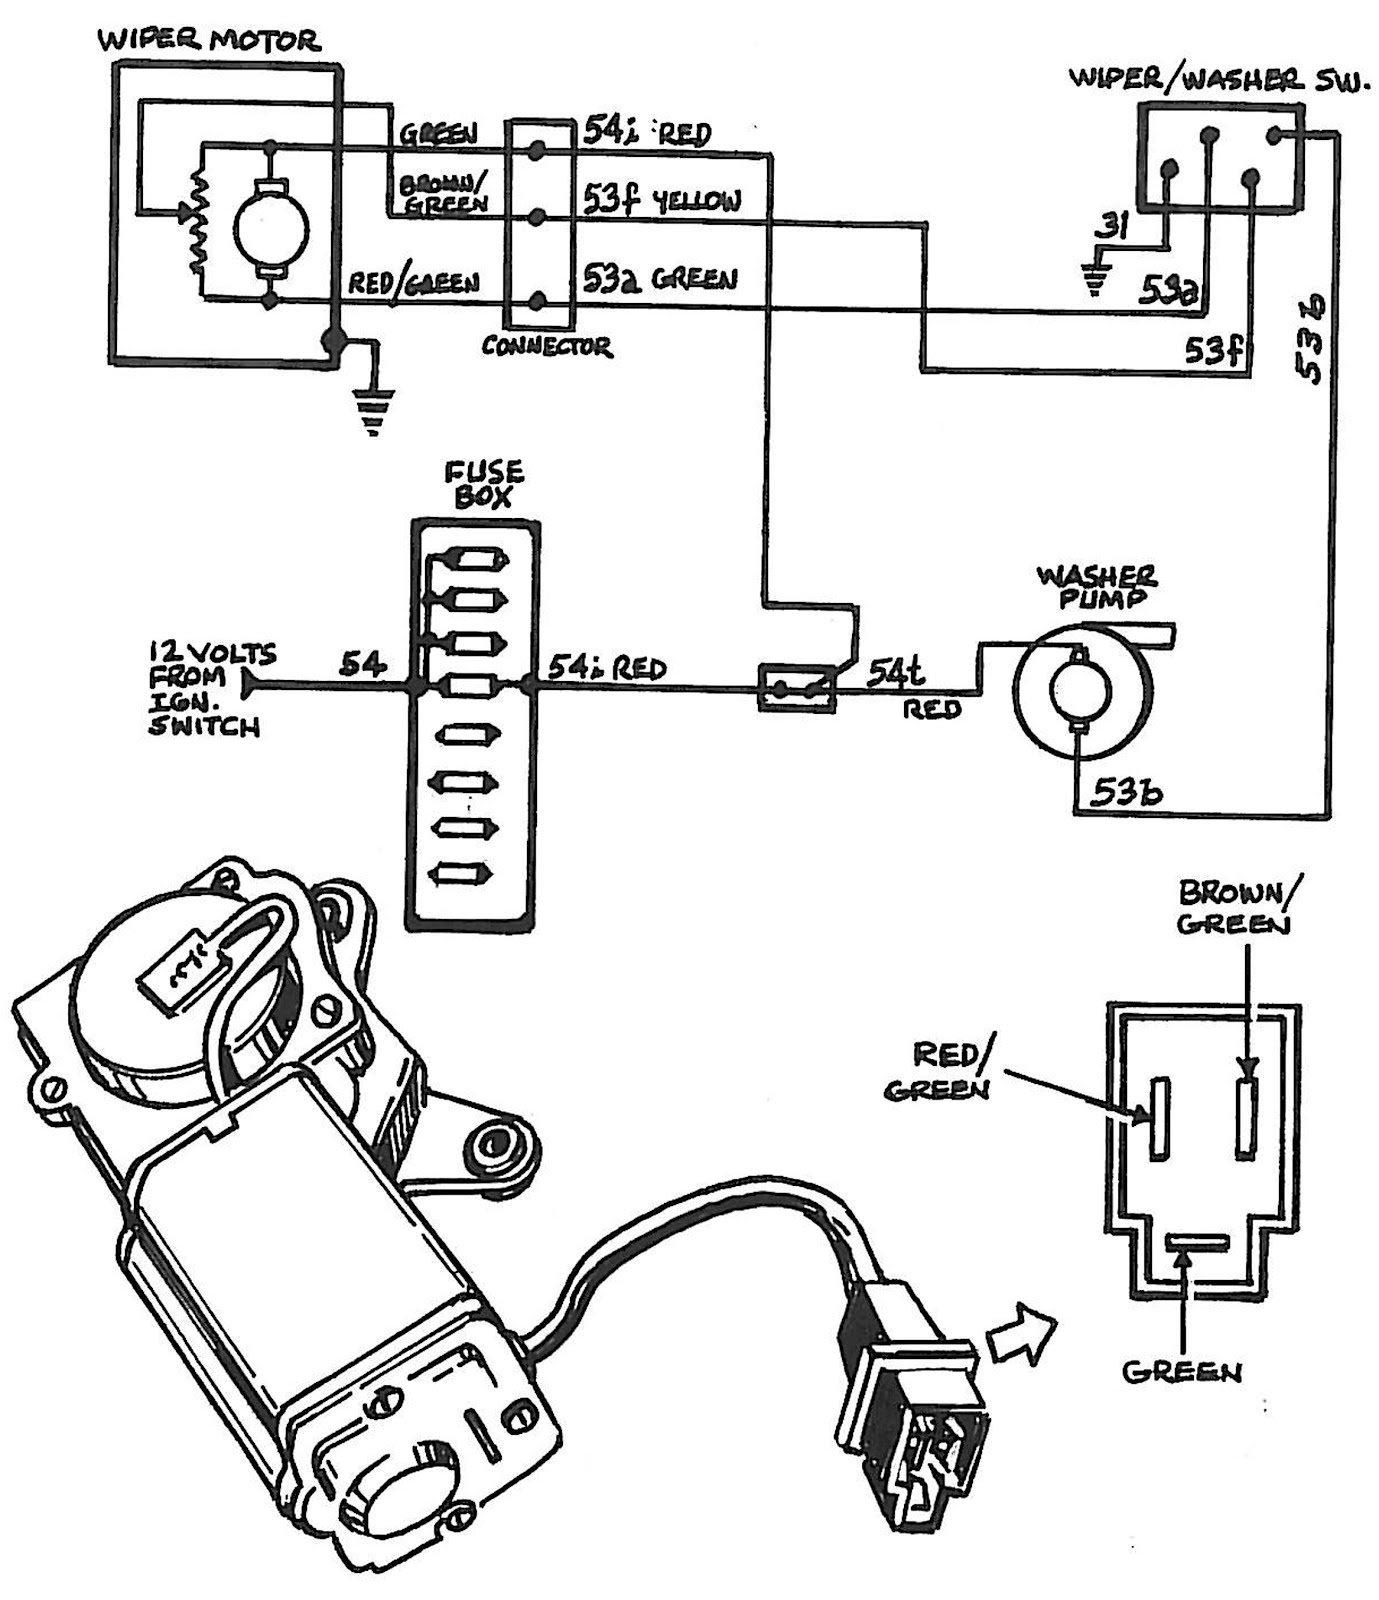 1989 Toyota Pickup Headlight Wiring Diagram in addition 1378140 Headlight Wiring as well 1995 Chevy S10 Starter Wiring Diagram also 2012 02 01 archive additionally 6a0co Chevrolet Silverado 1995 Chevrolet Silverado Need Wiring. on 1998 camaro wiring harness diagram